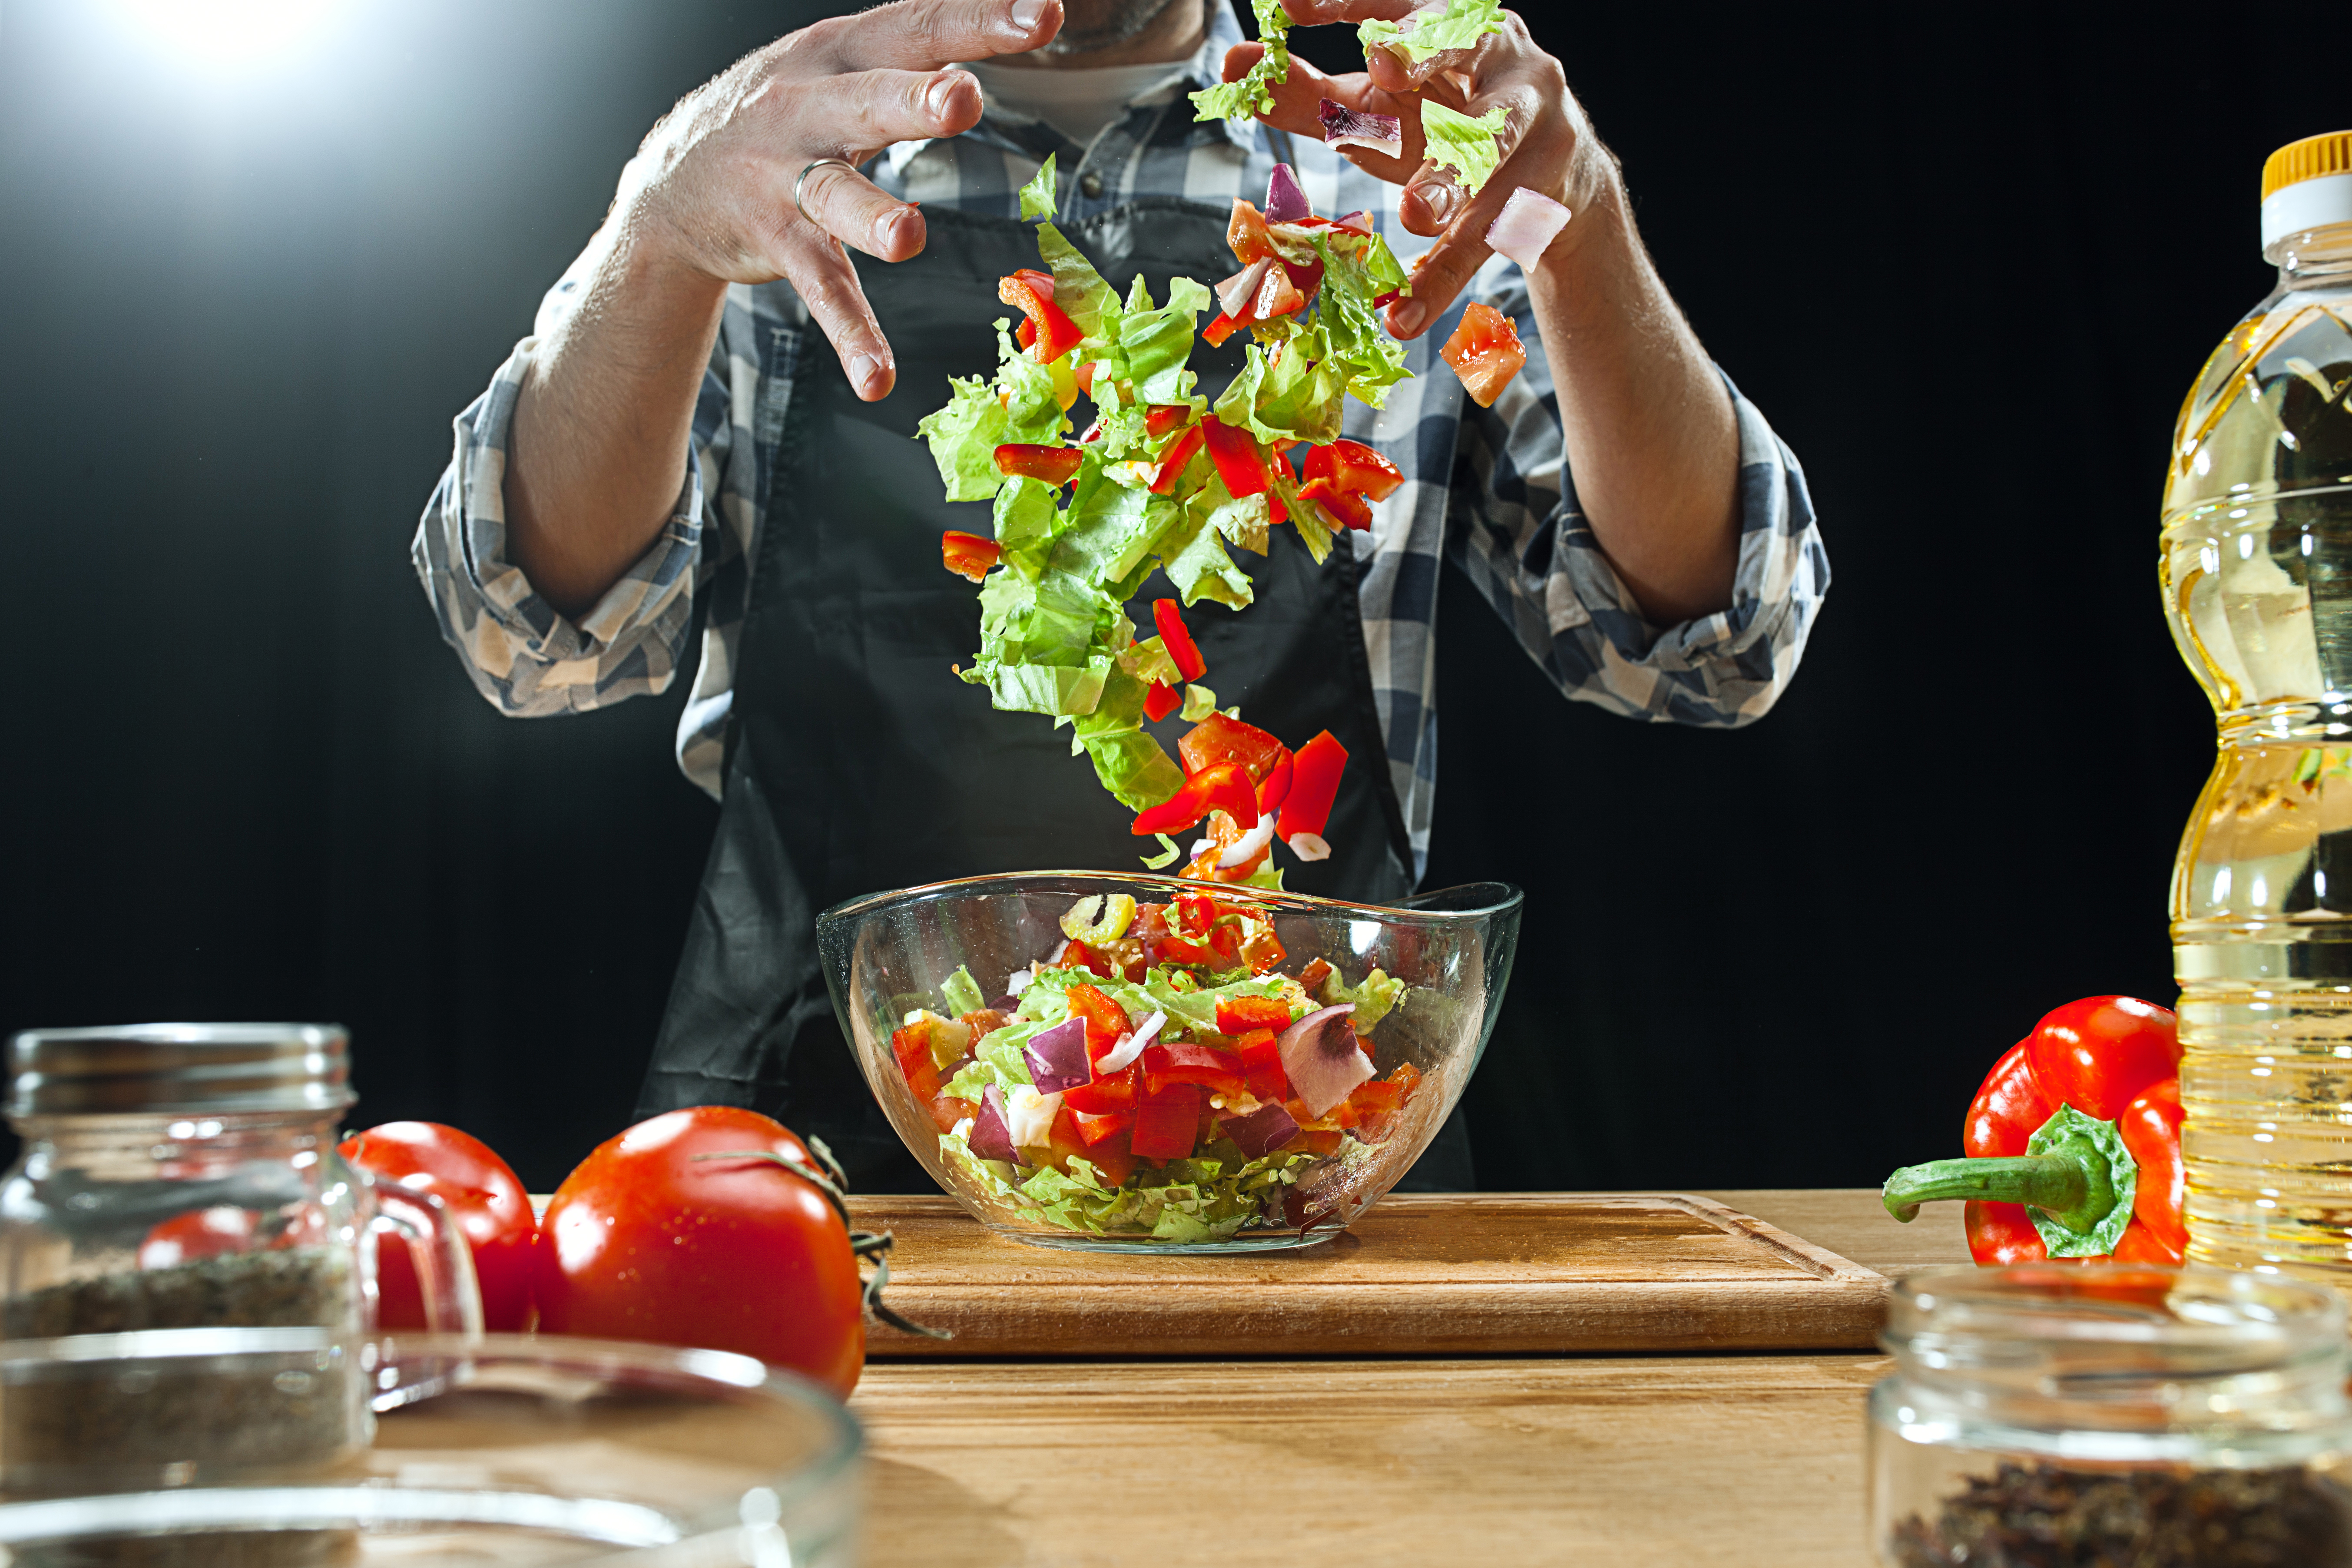 Preparing salad. Female chef cutting fresh vegetables. Cooking process. Selective focus